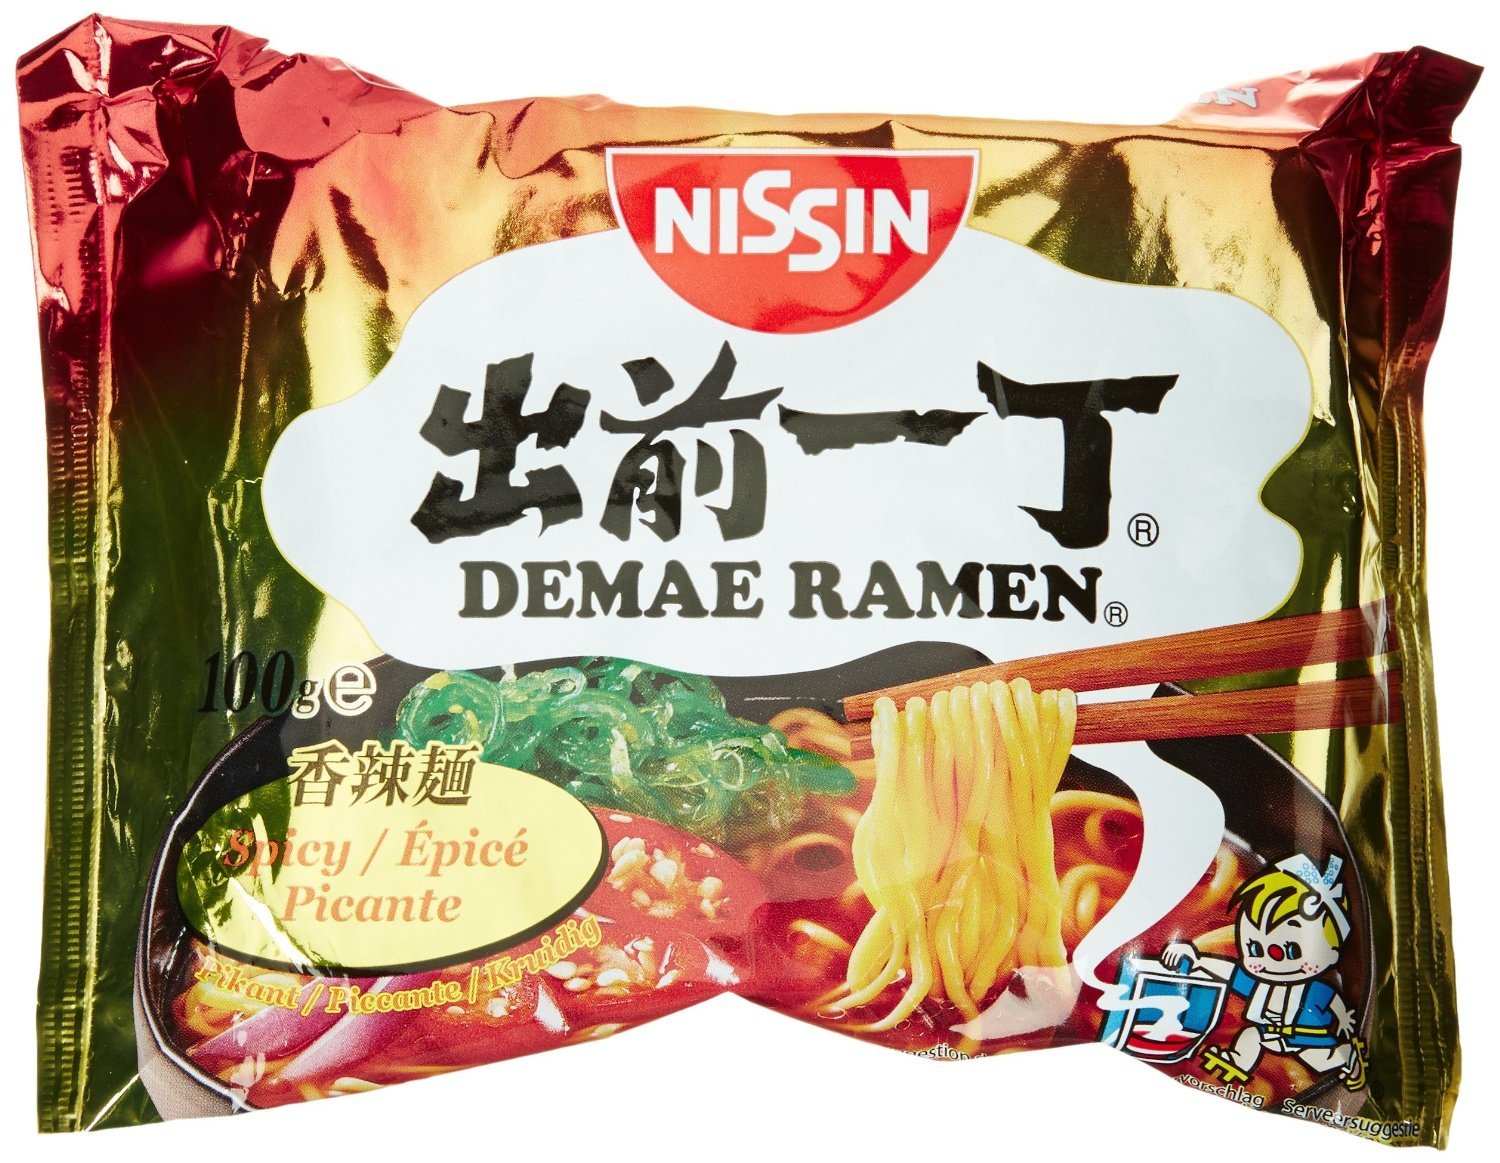 Nissin Demae Ramen Spicy Instant Noodles,  Pack of 30